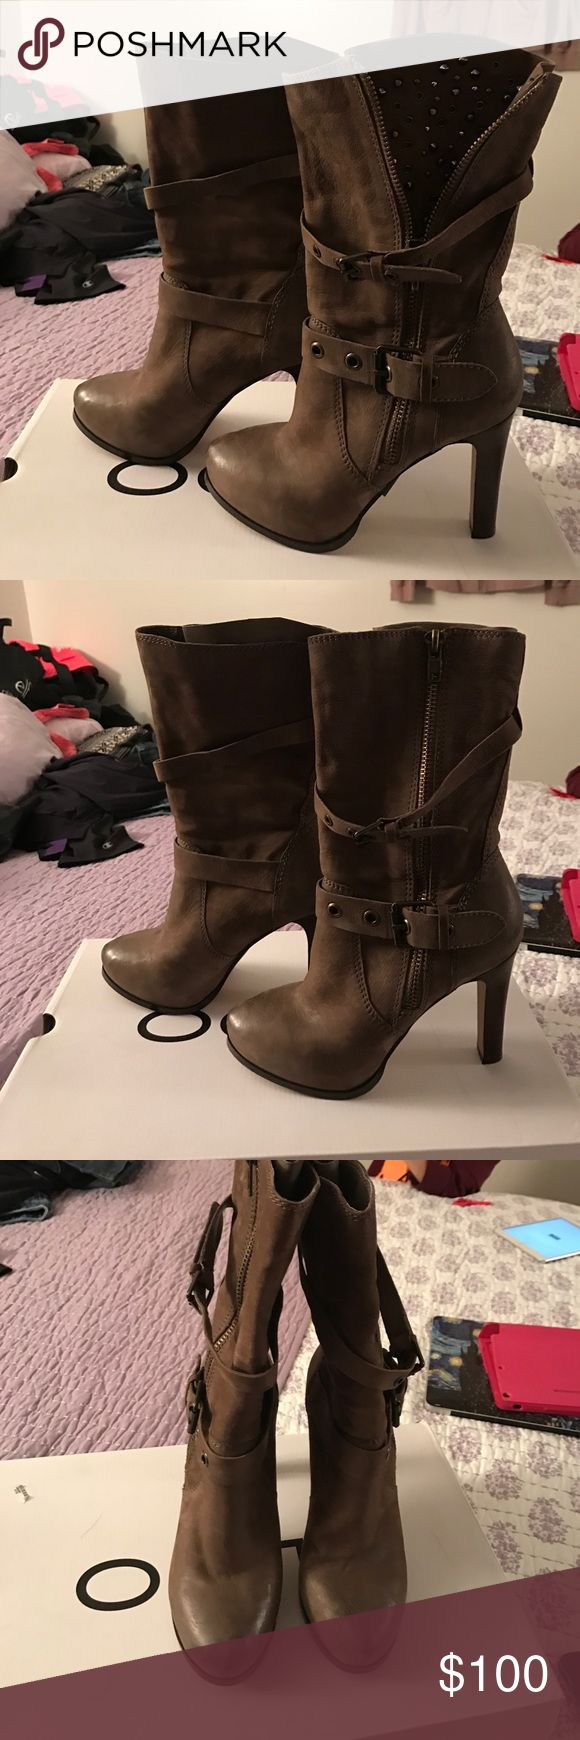 Worn once brown aldo boots size 9 Worn once brown aldo boots size 9. These boots are so hot. You can wear them two ways. You can wear them with the spikes showing or with out. I only had the chance to wear them for my birthday. Give these boots a home. Accepting reasonable offers Aldo Shoes Heeled Boots